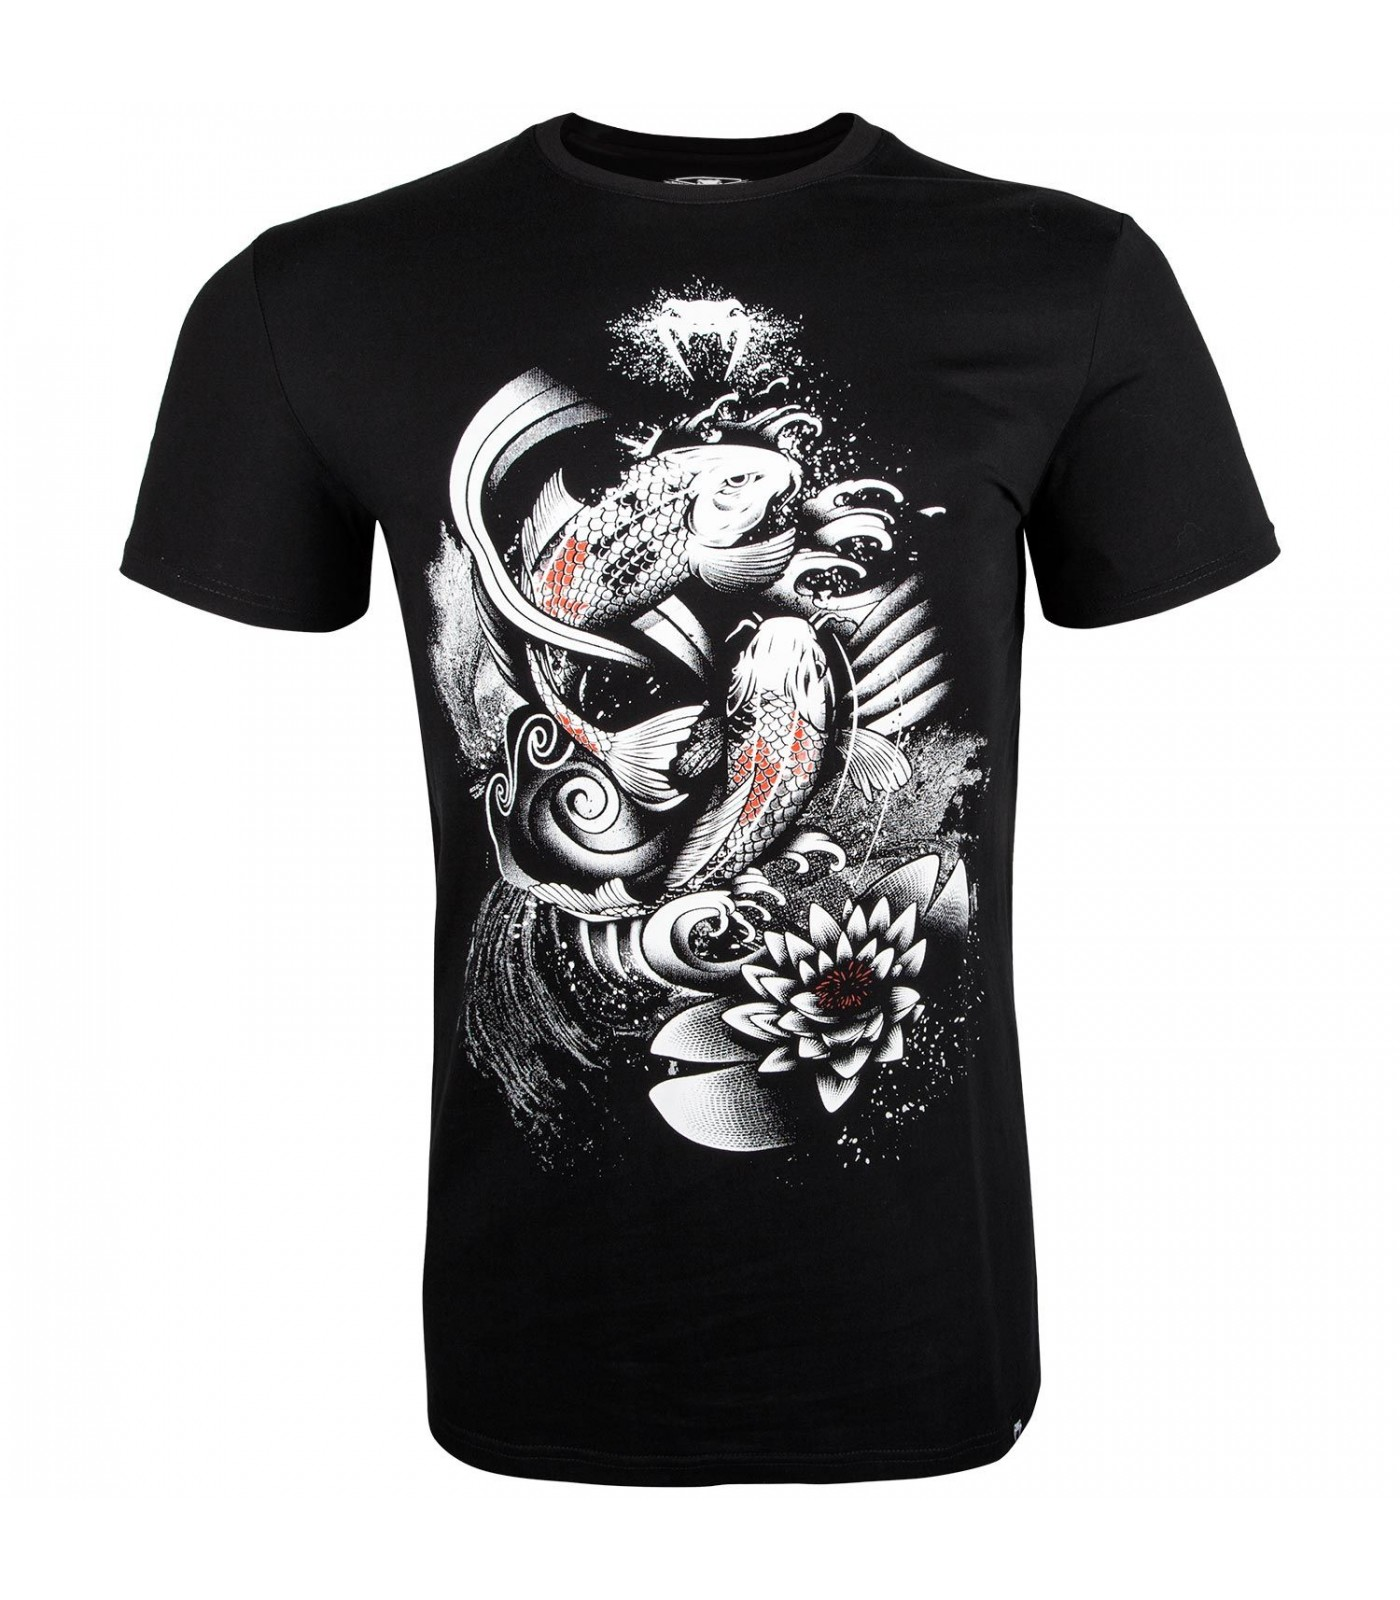 Тениска - Venum Koi 2.0 T-shirt - Black/White​